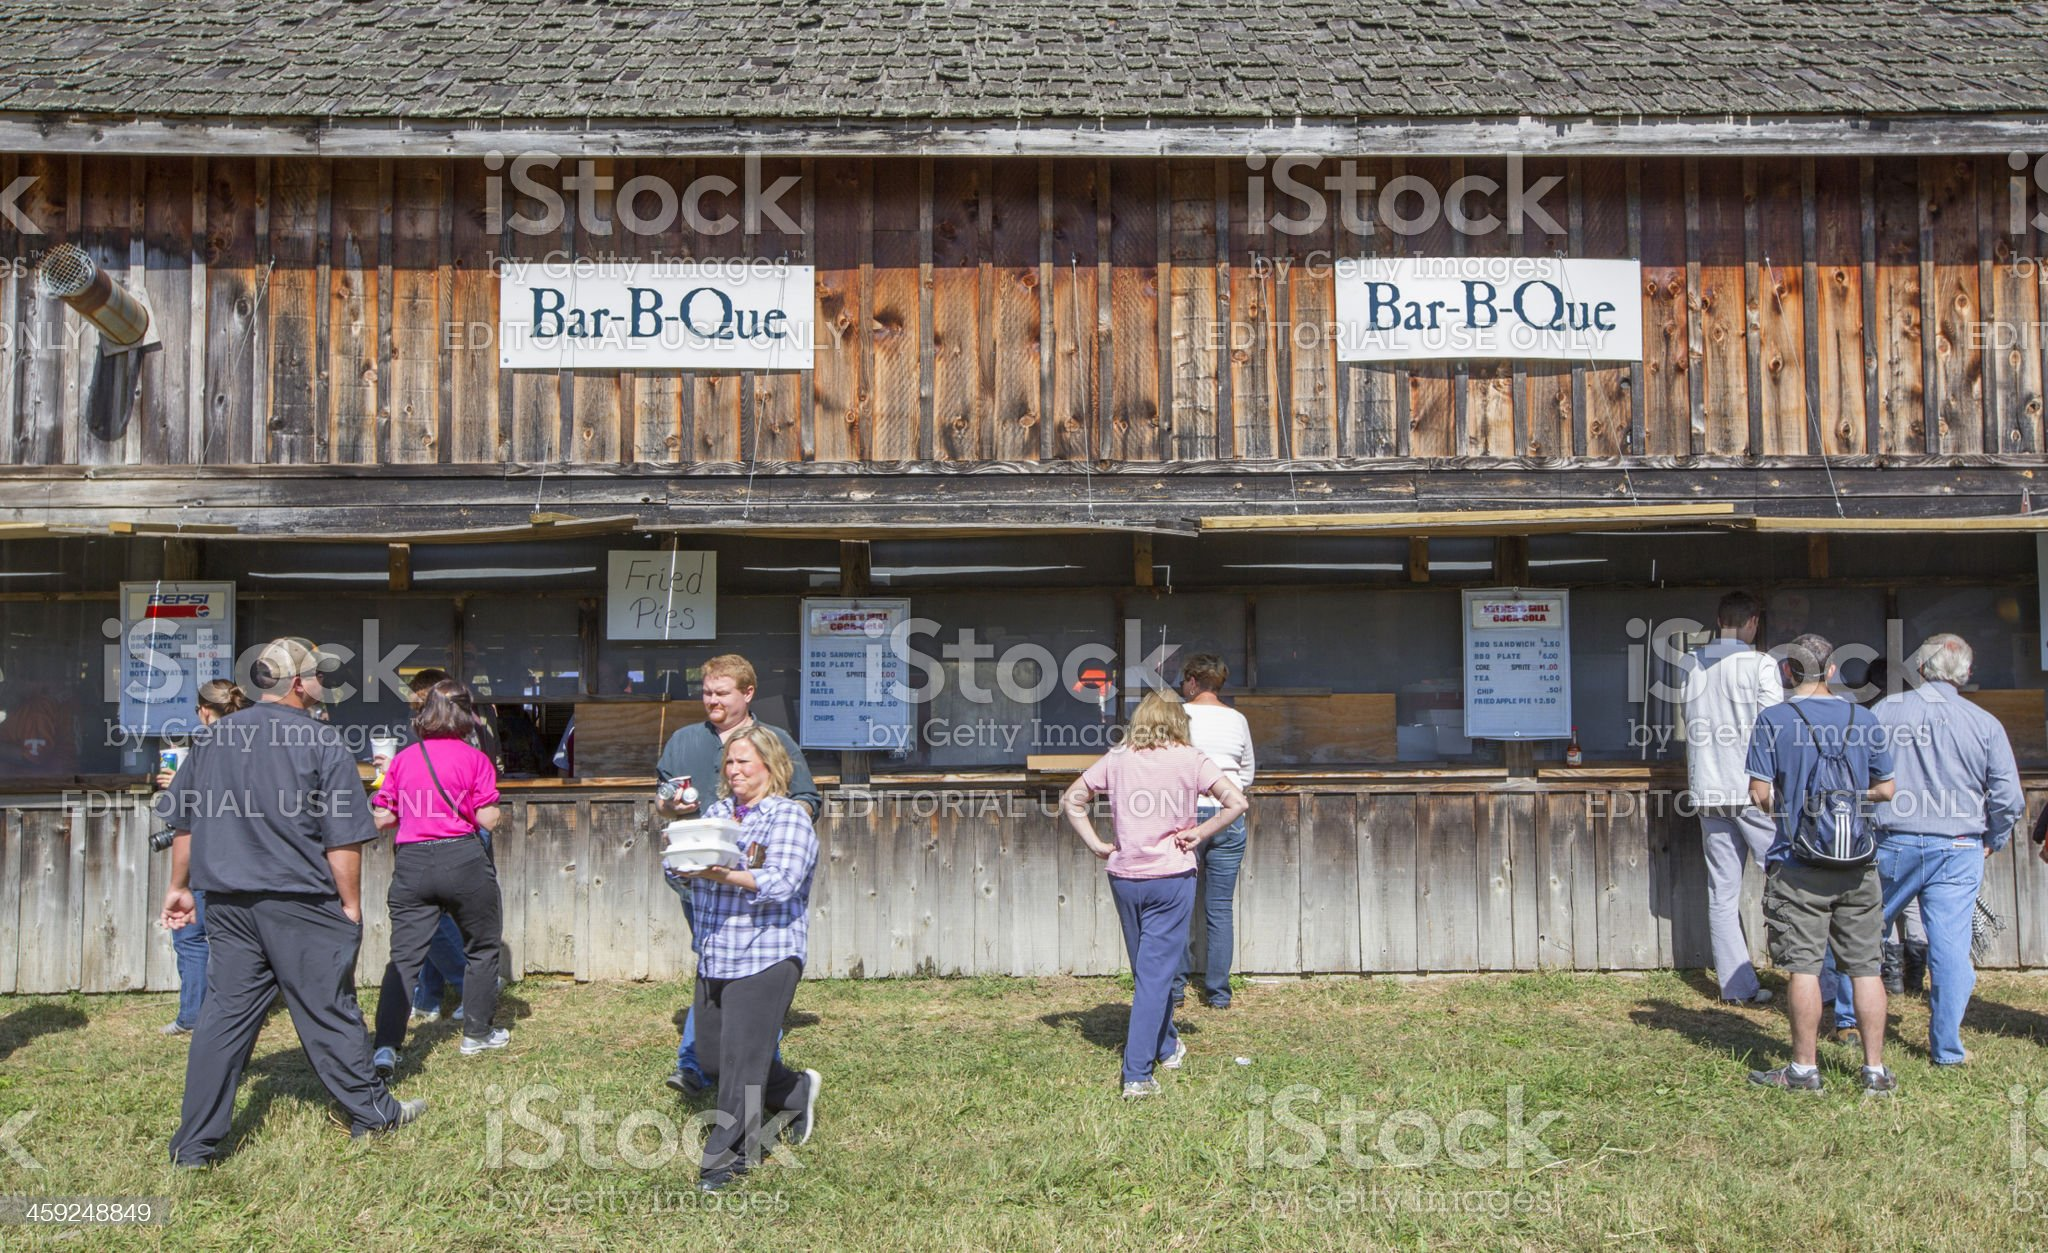 Customers Purchasing Southern Bar-B-Que at Outdoor Food Stand royalty-free stock photo